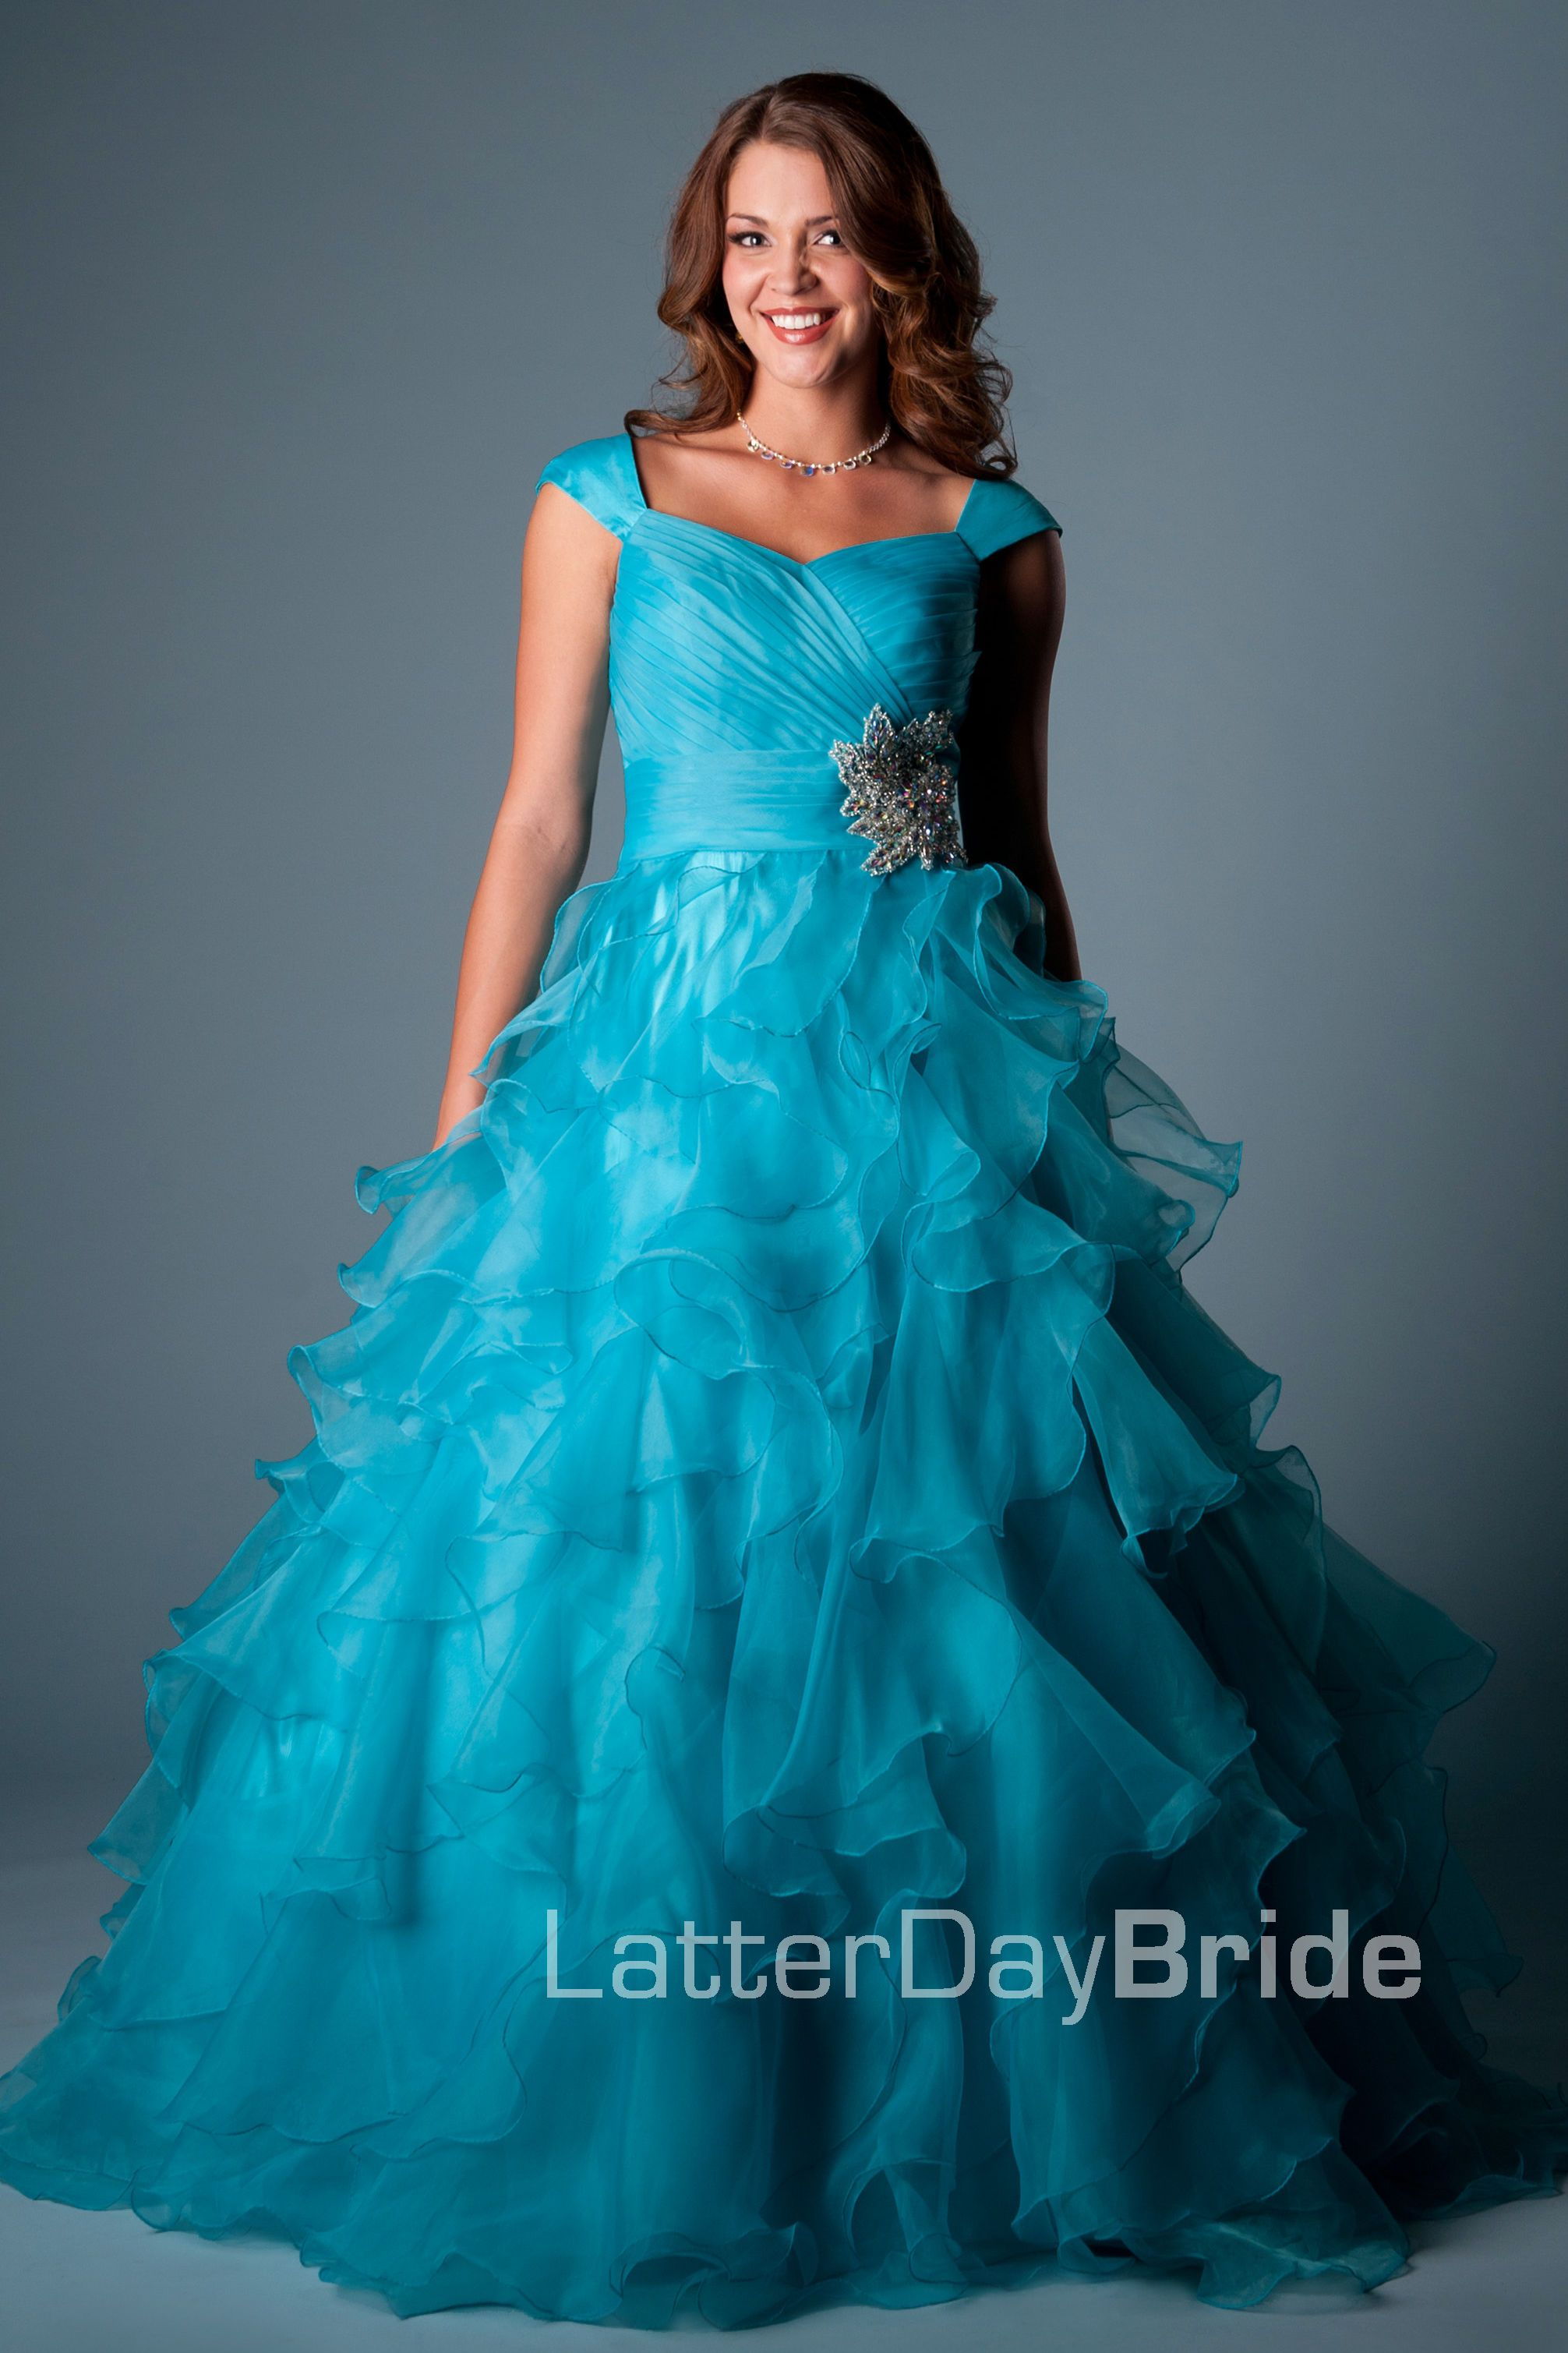 Awesome Lds Prom Dress Vignette - Womens Dresses & Gowns Collections ...